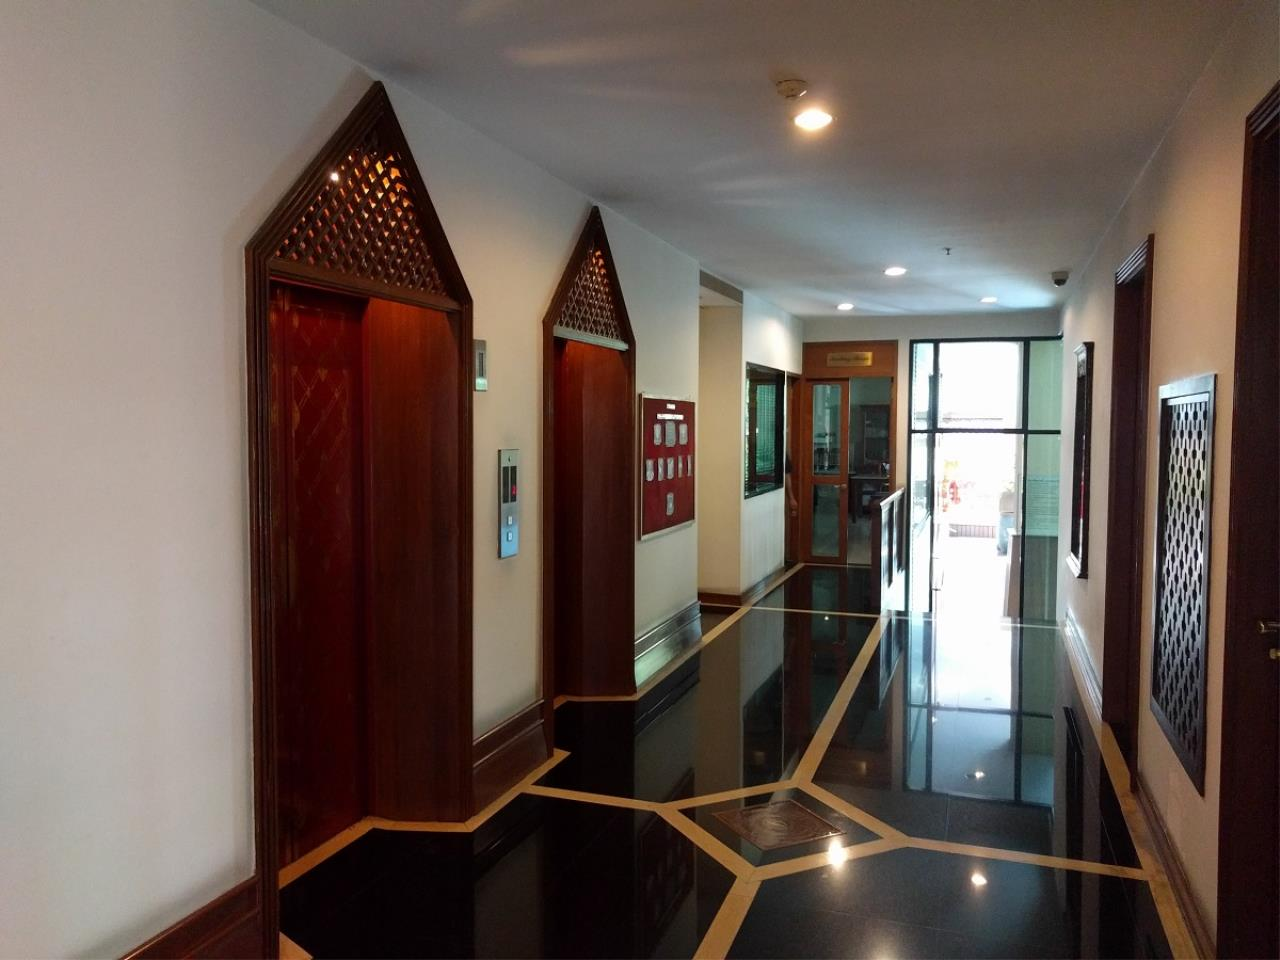 RE/MAX CondoDee Agency's Thai Elegance Luxury Condominium - Entire Building for Sale 2